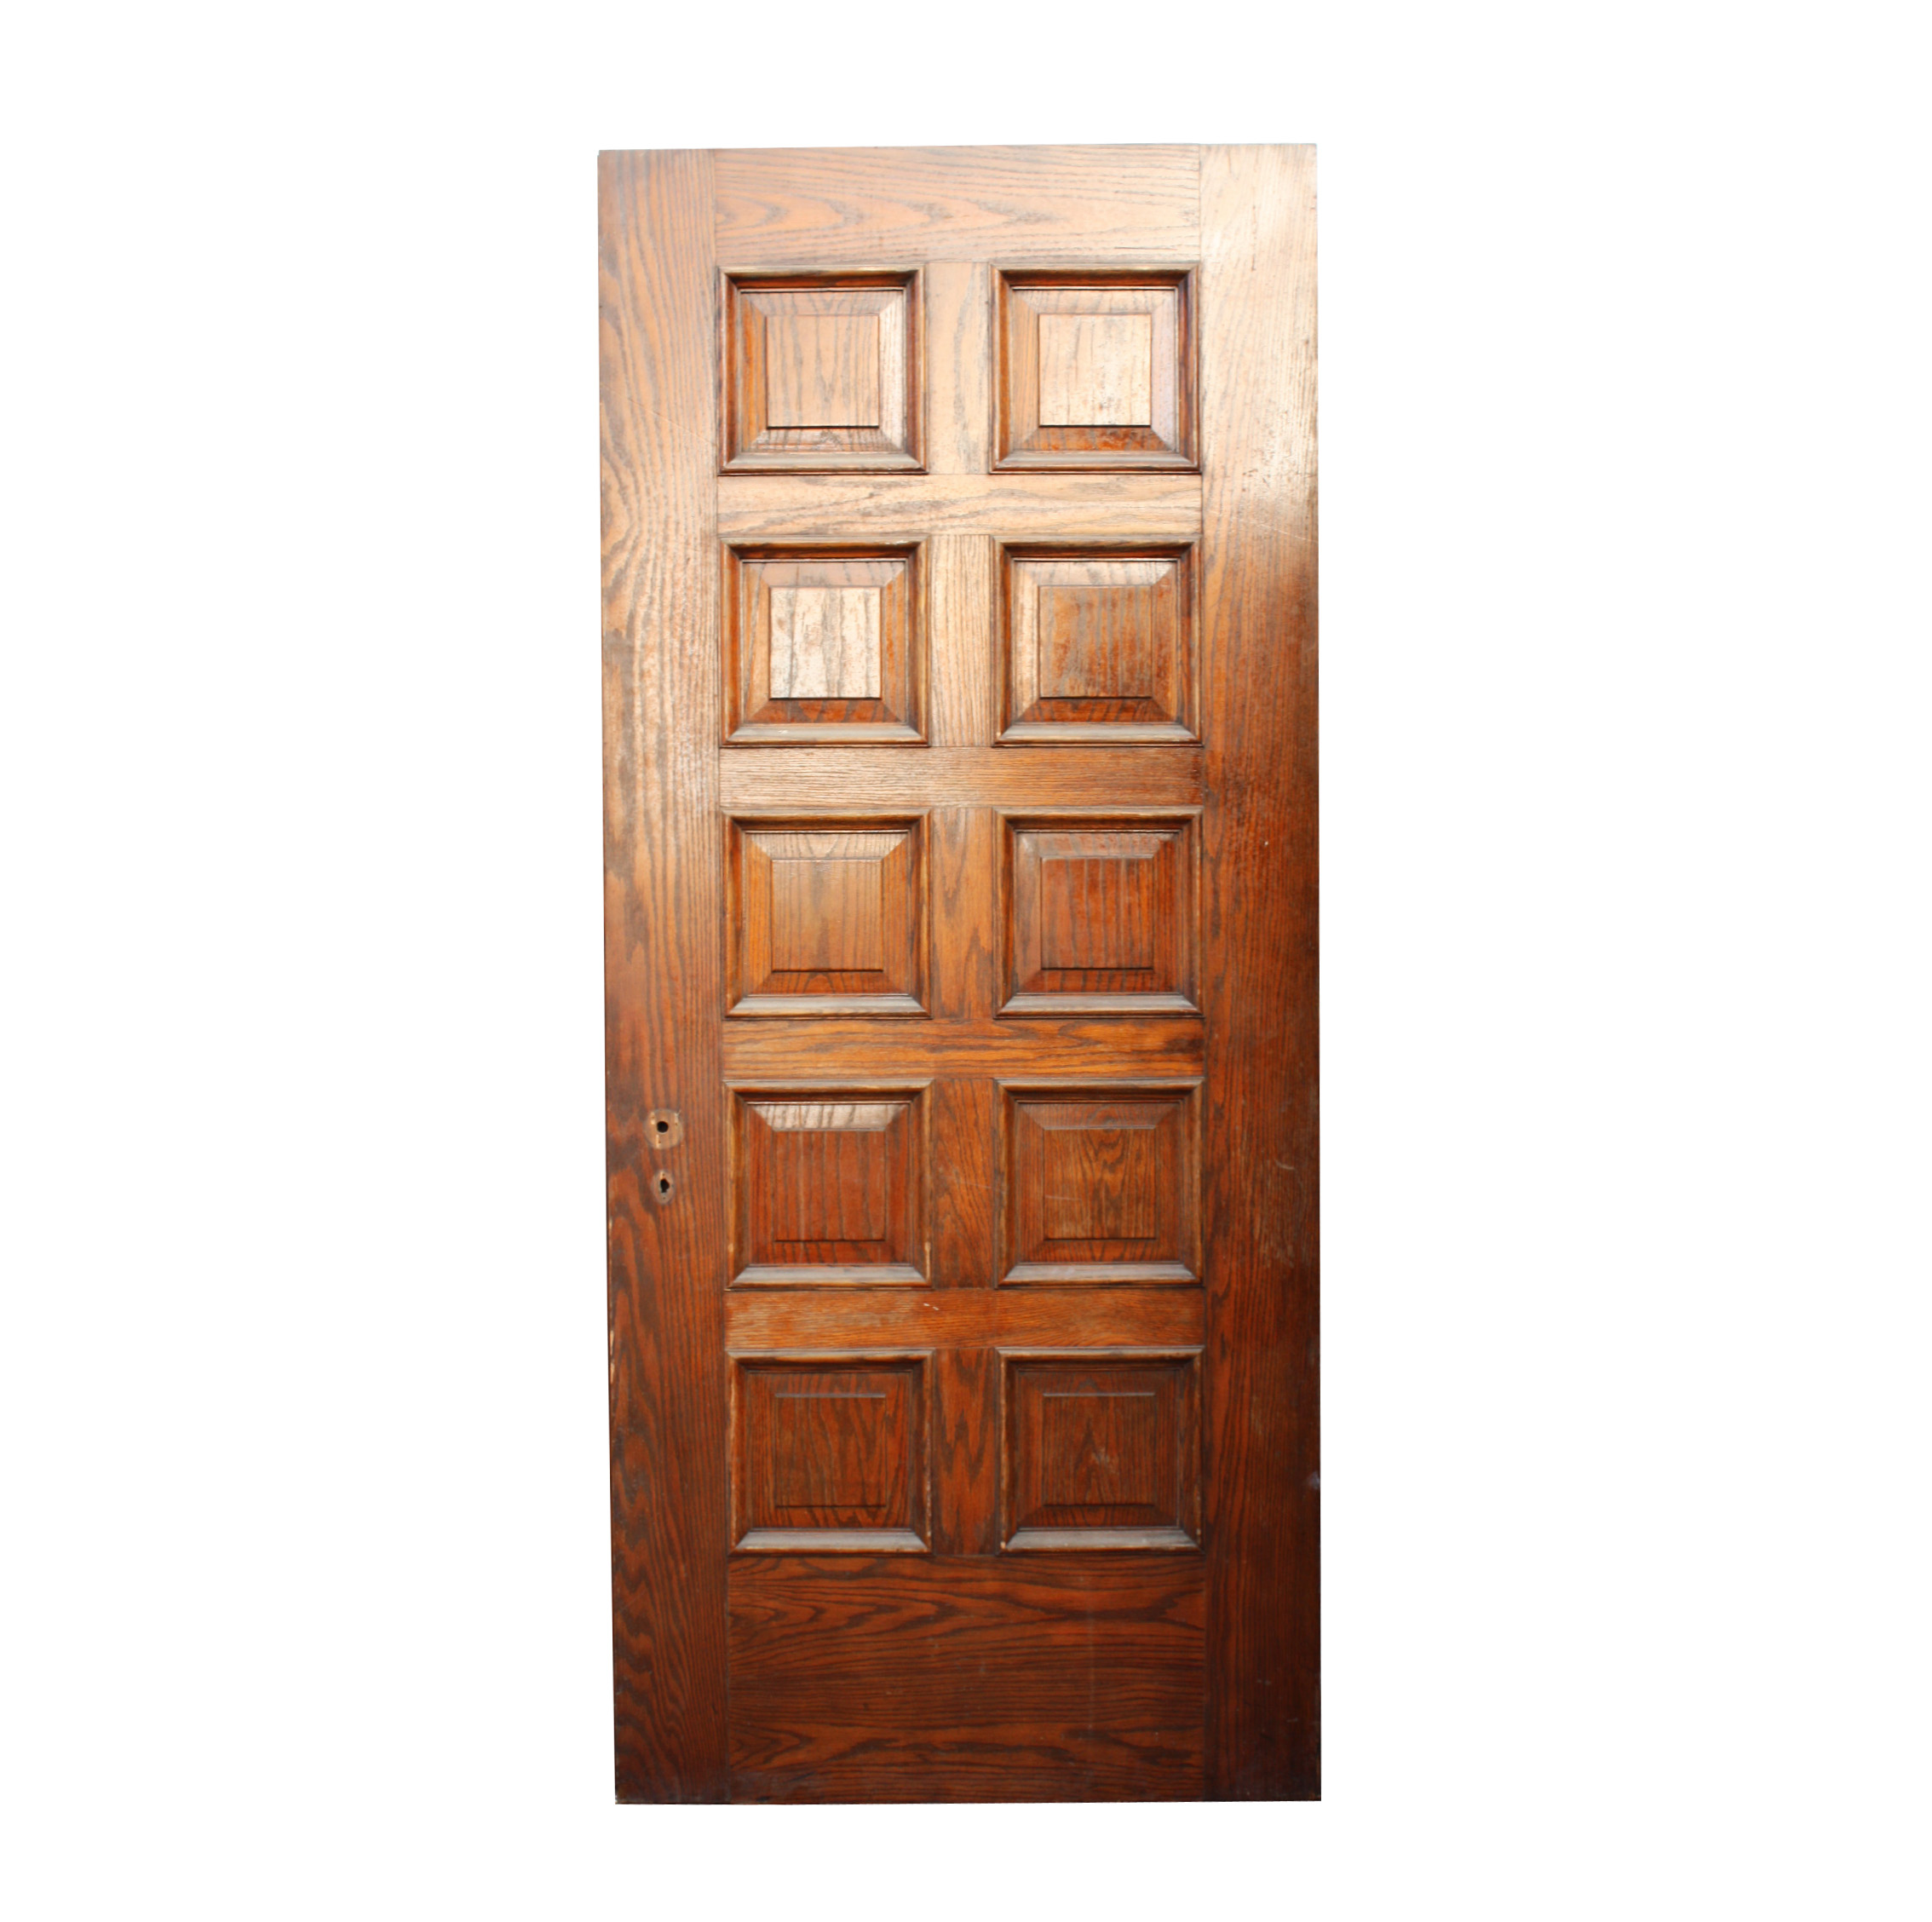 Handsome Antique 36 Solid Wood Door With Recessed Panels Nid26 Rw For Sale